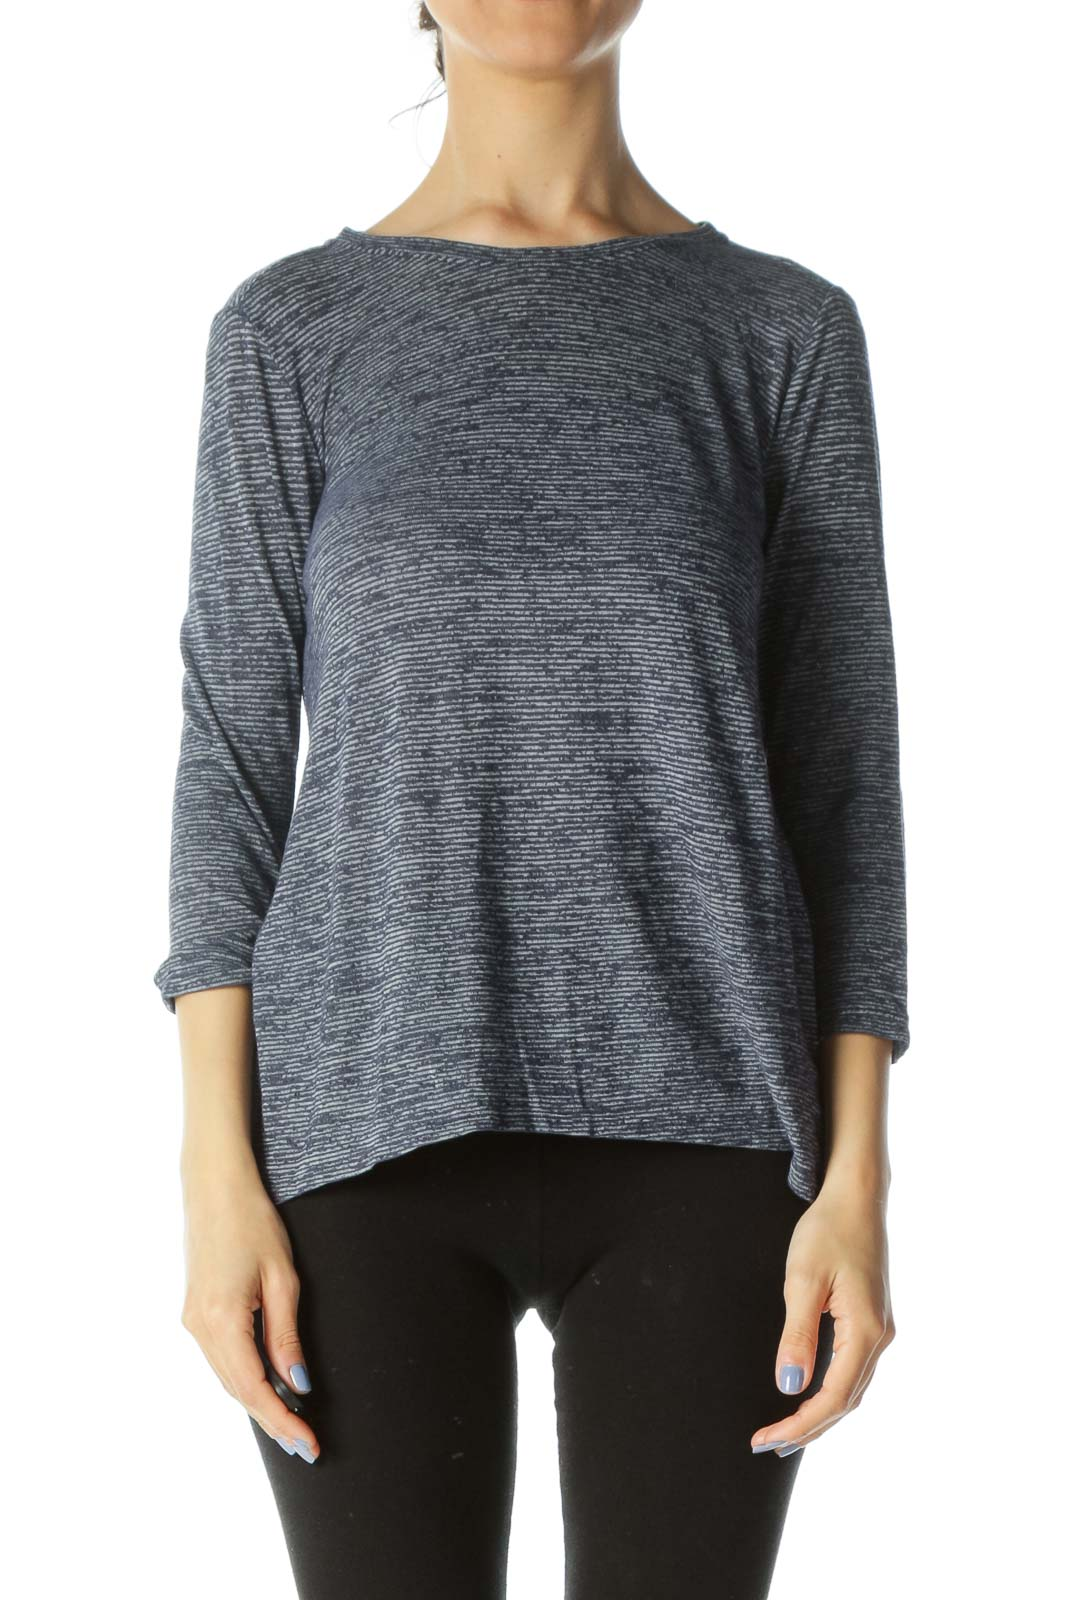 Blue/Gray Striped Stretch Long-Sleeve Textured Activewear Top